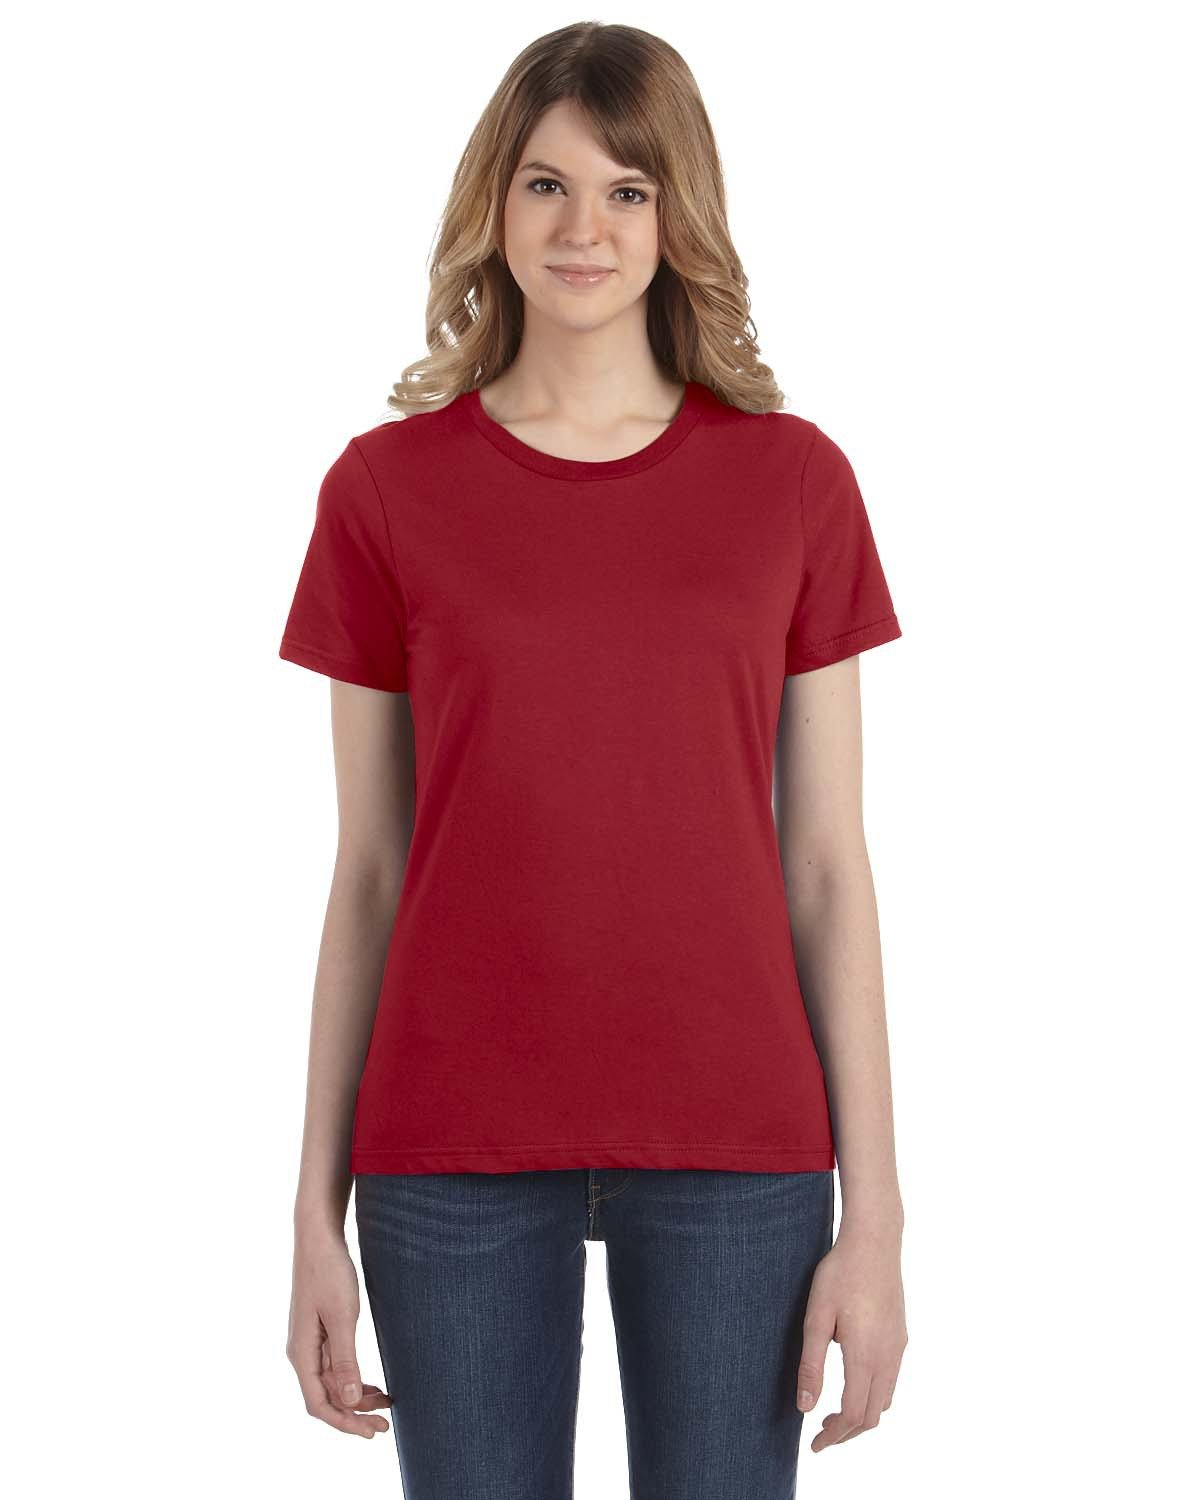 Anvil Ladies' Lightweight T-Shirt INDEPENDENCE RED